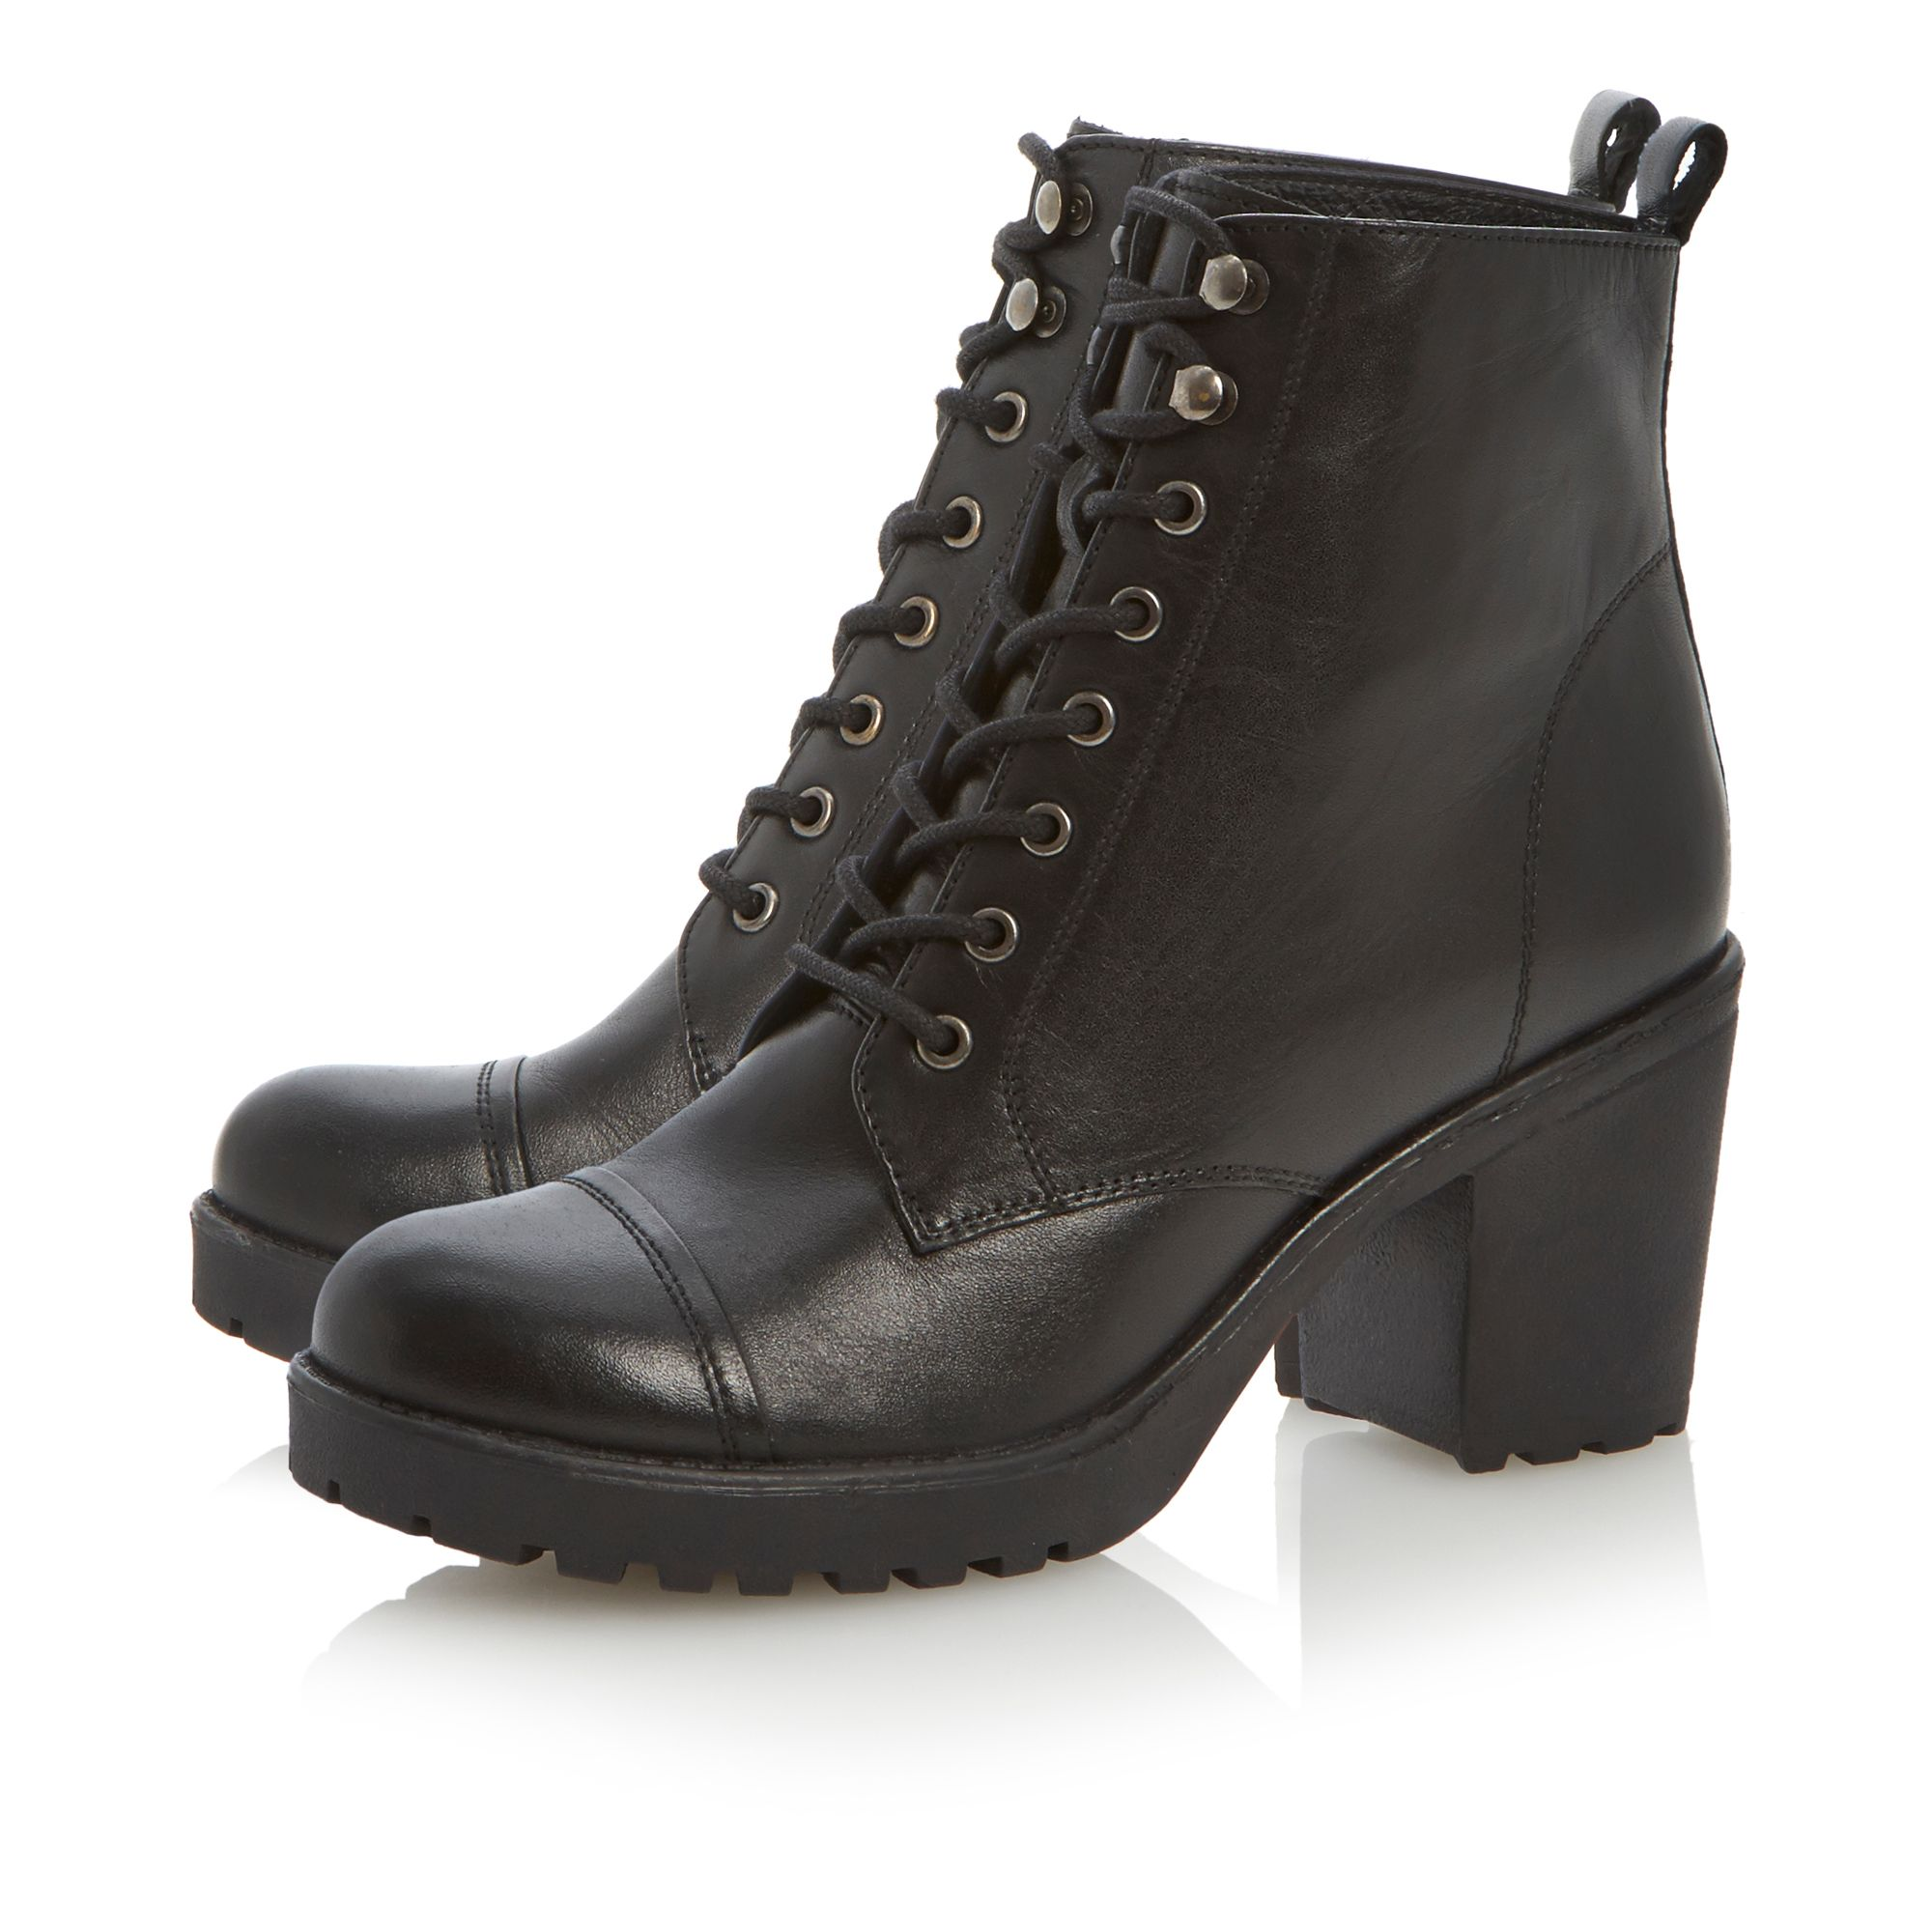 Plath heeled lace up biker boots